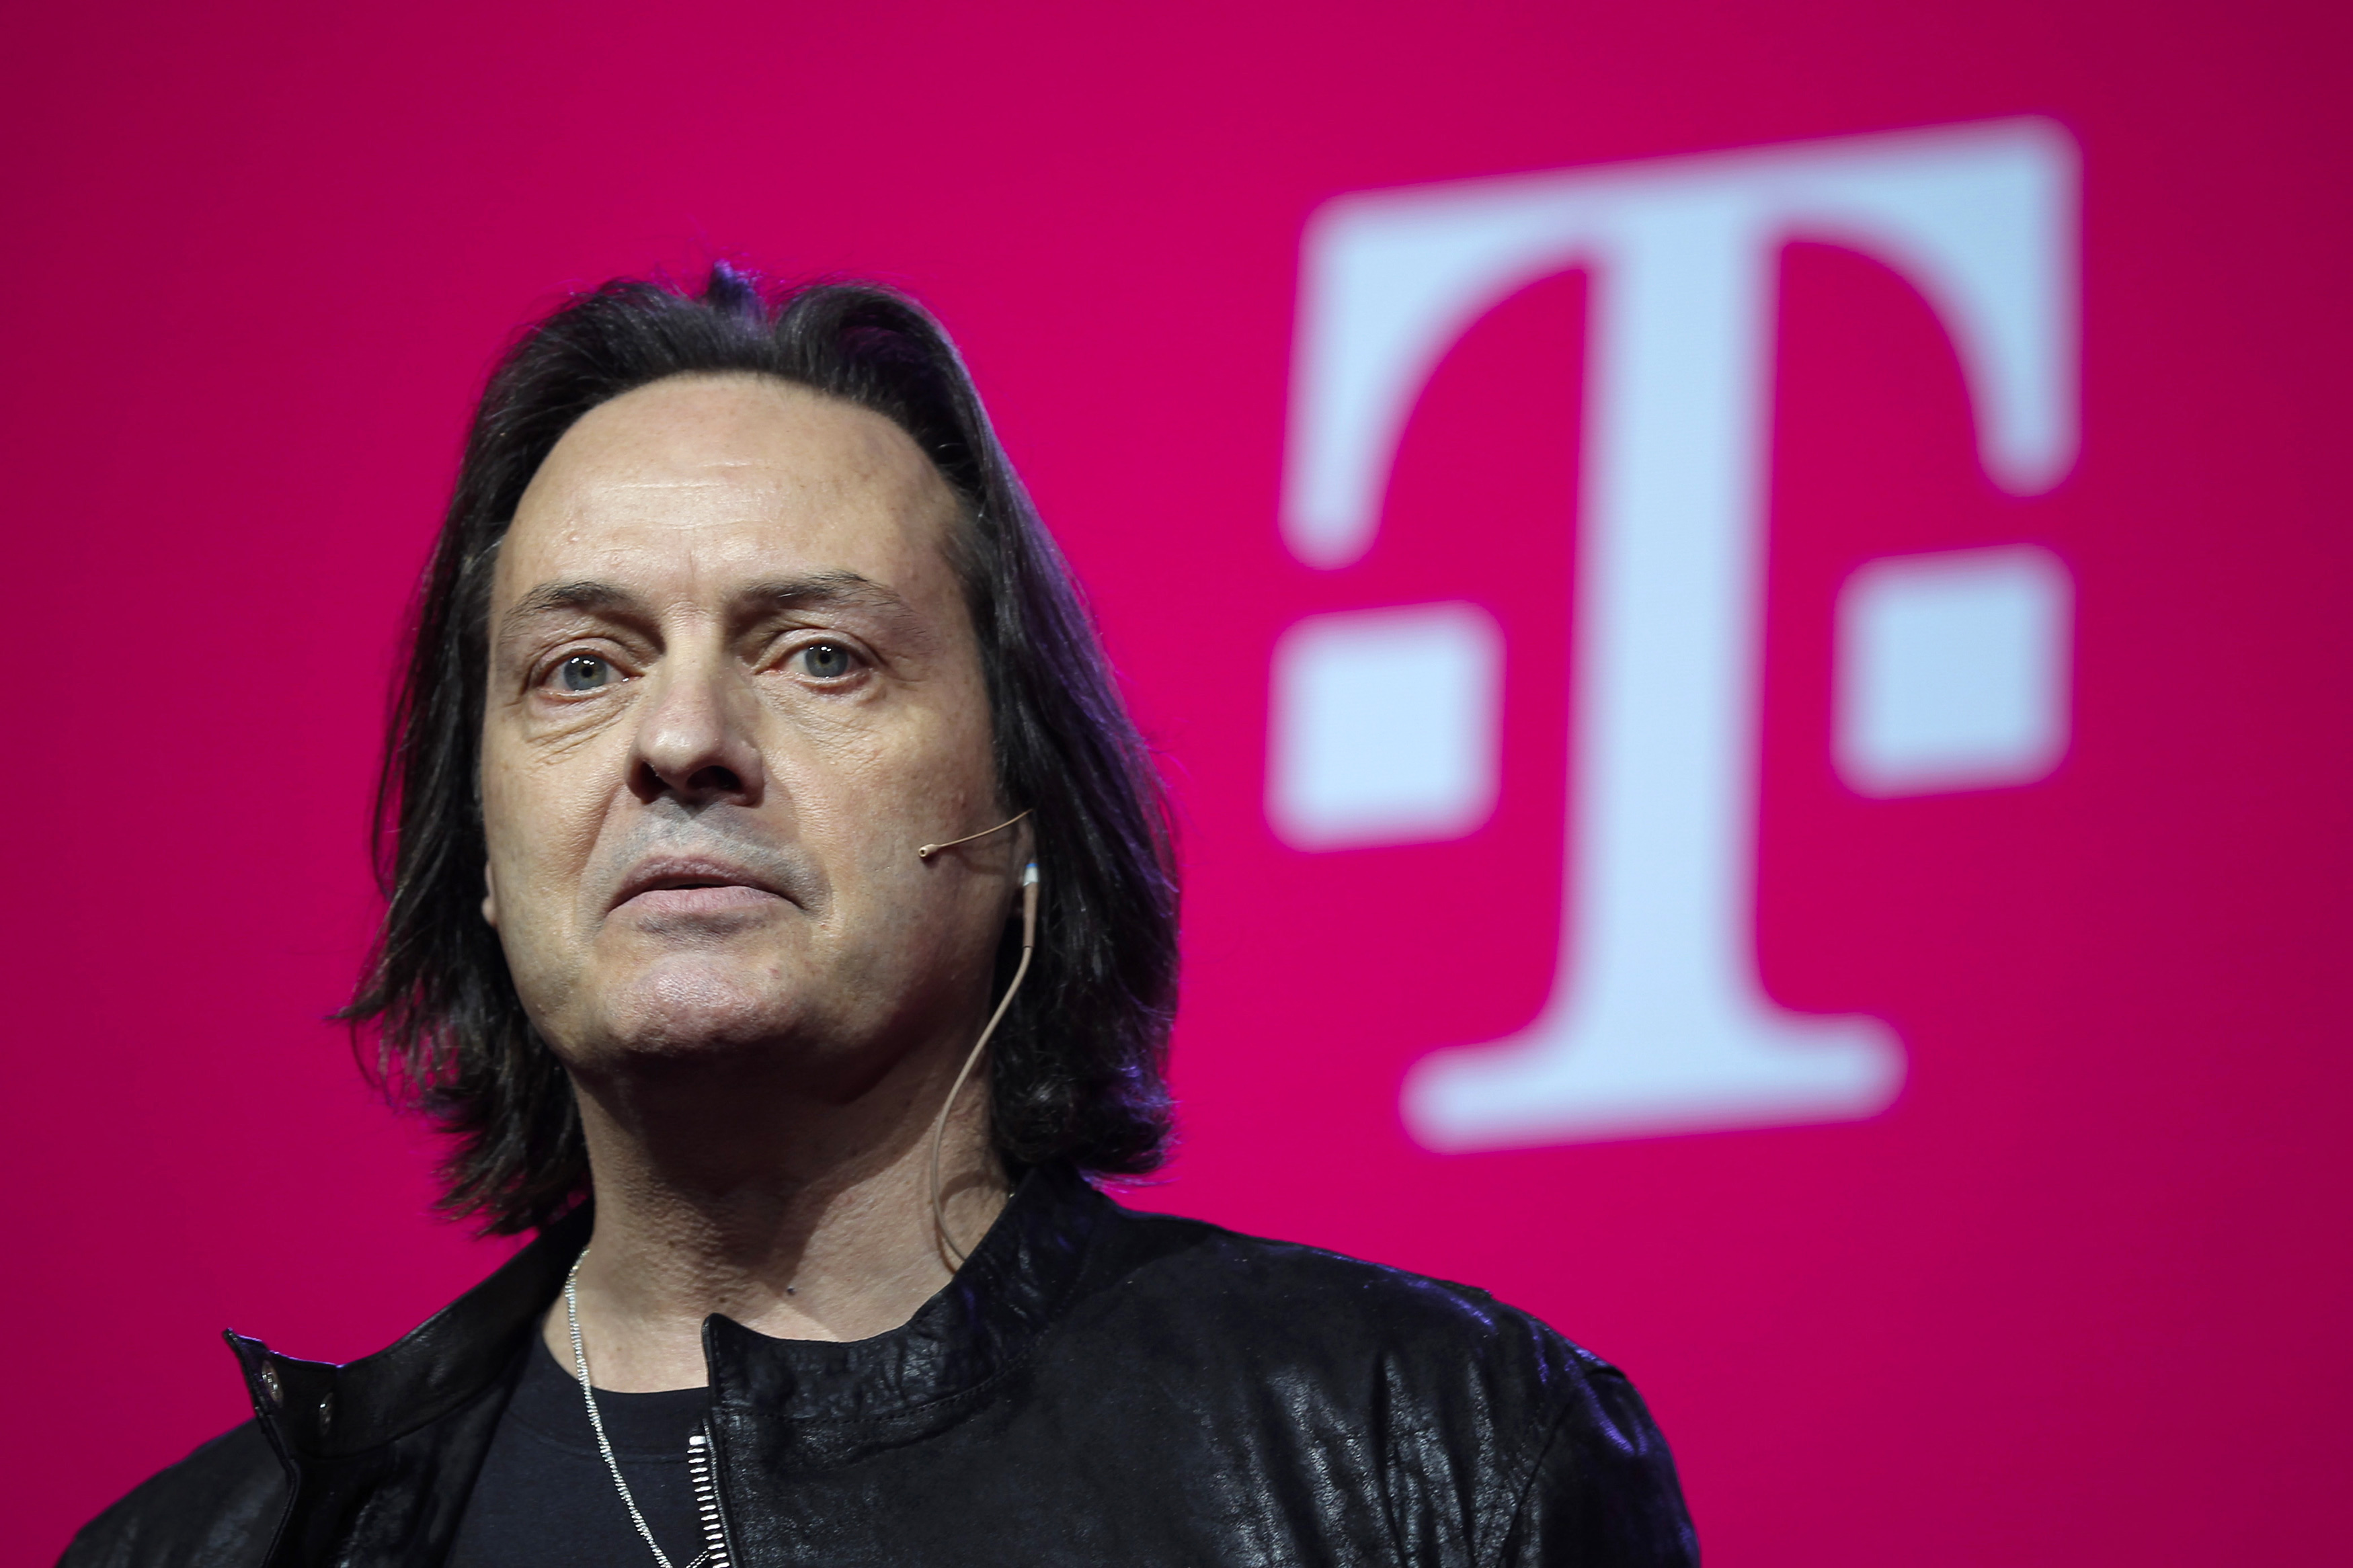 T-Mobile CEO Legere speaks to guests during their company's Un-carrier 9.0 event in New York